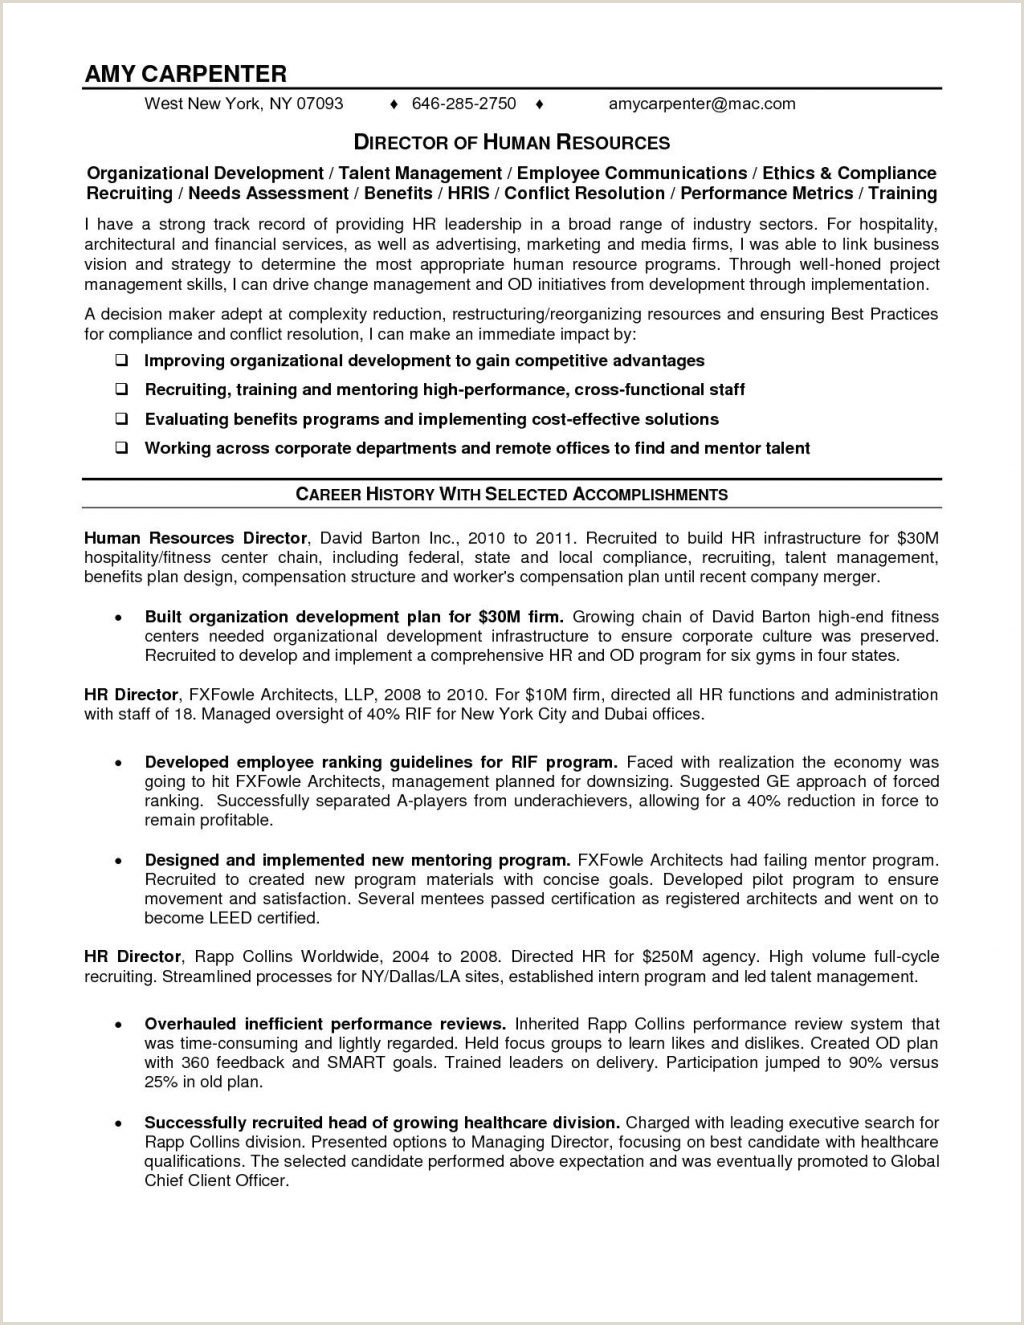 Middle School English Teacher Resume Worksheet Ideas Careerksheets for Middle School Day